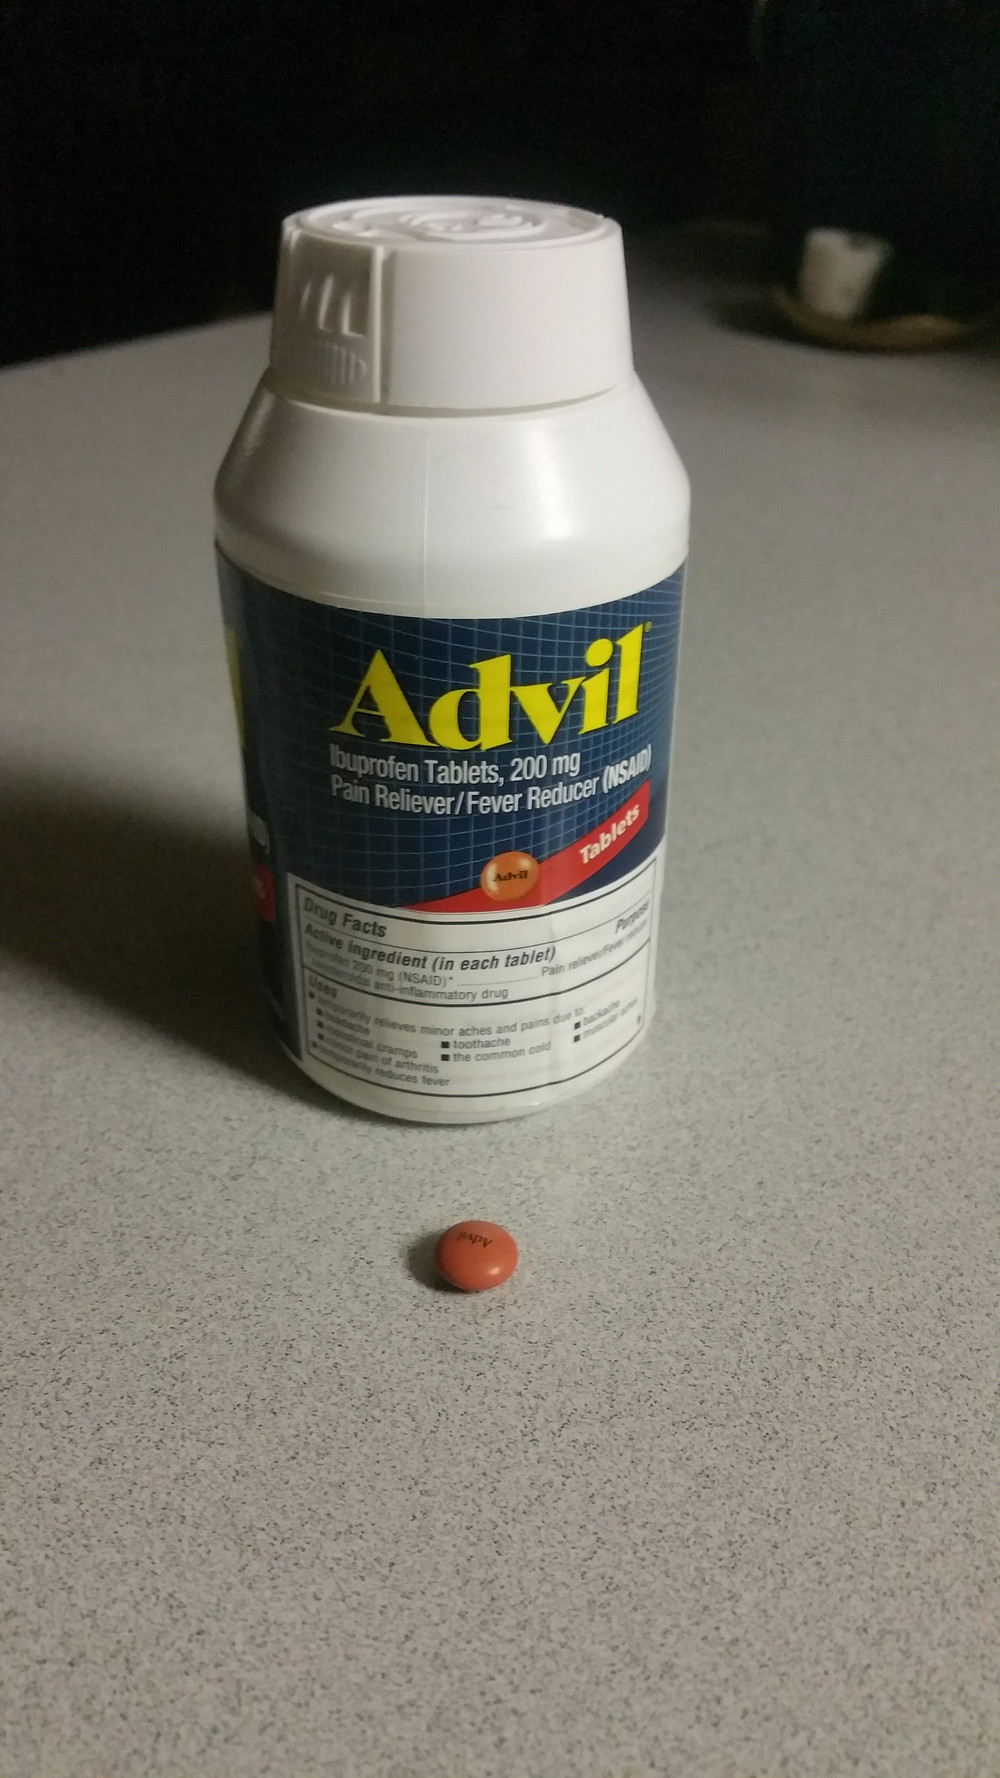 Advil, anti-inflammatory, nsaid